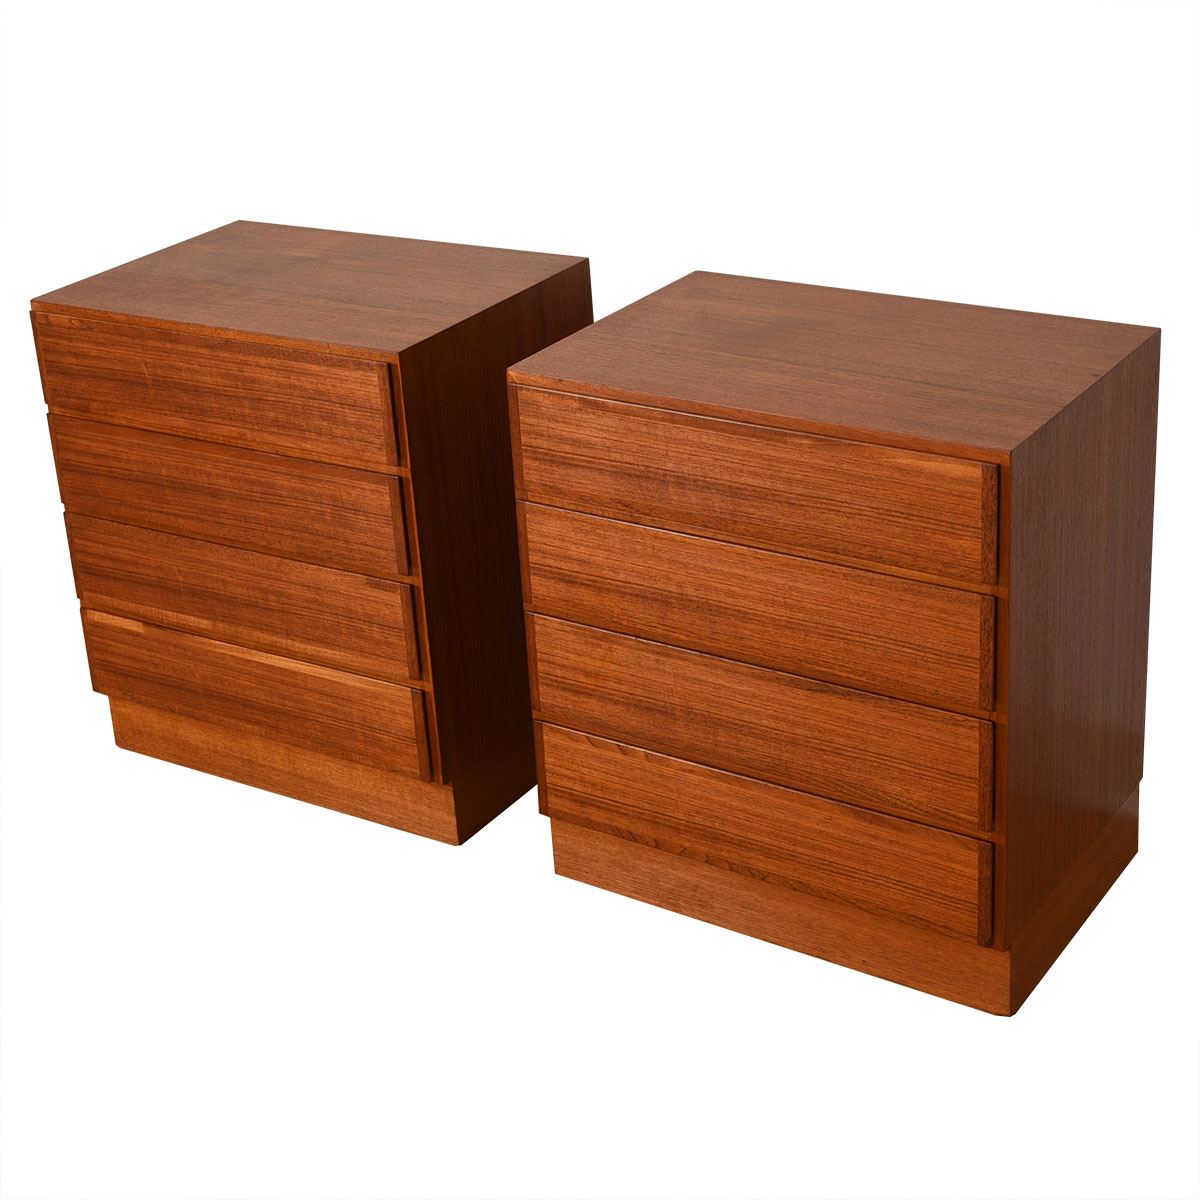 Omann Jun. Pair or Danish Modern Teak Petite Chest of Drawers / Nightstands